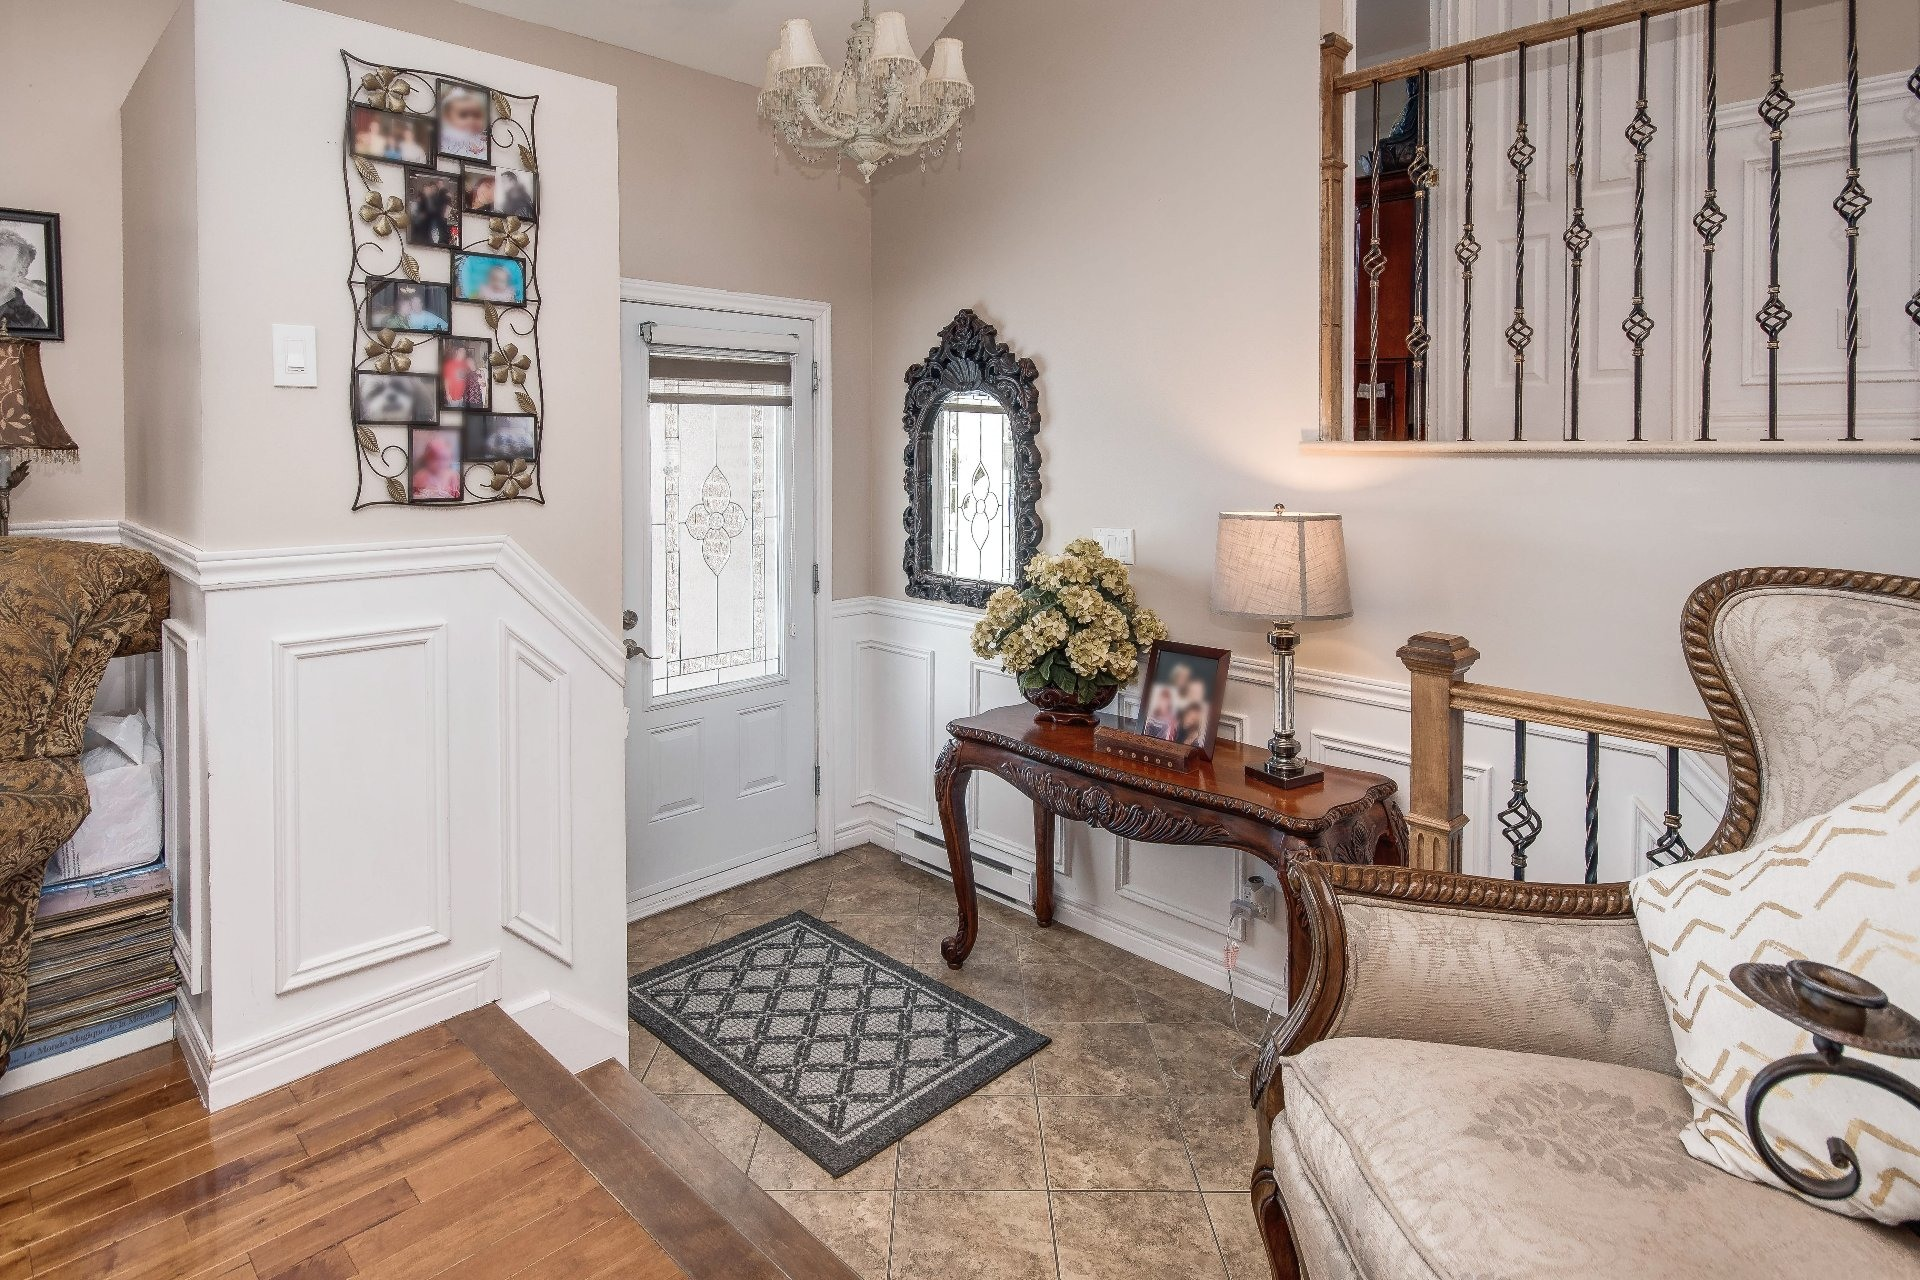 image 2 - House For sale Châteauguay - 11 rooms